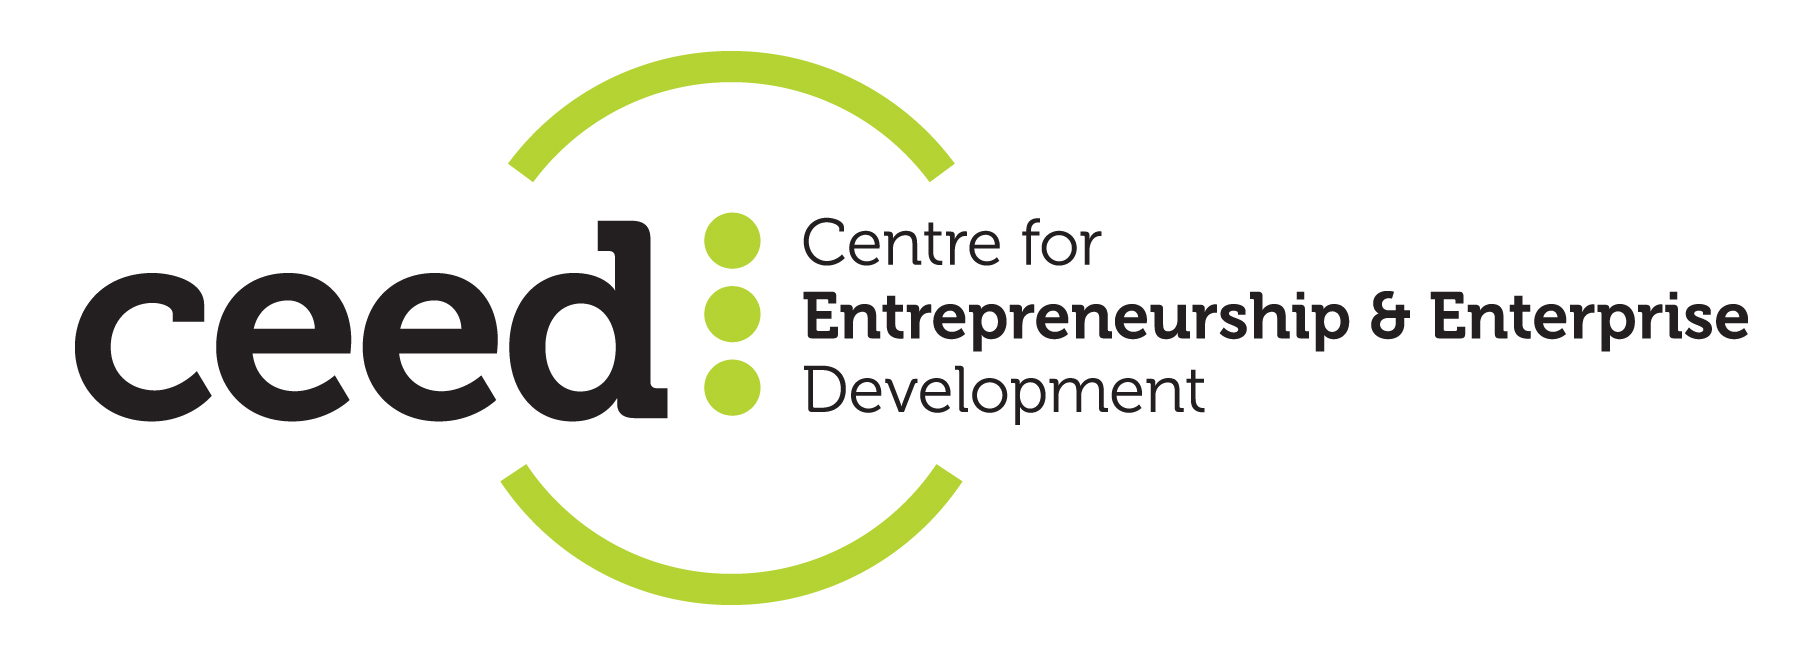 MTU - CEED Student Entrepreneurial Journey Workshop